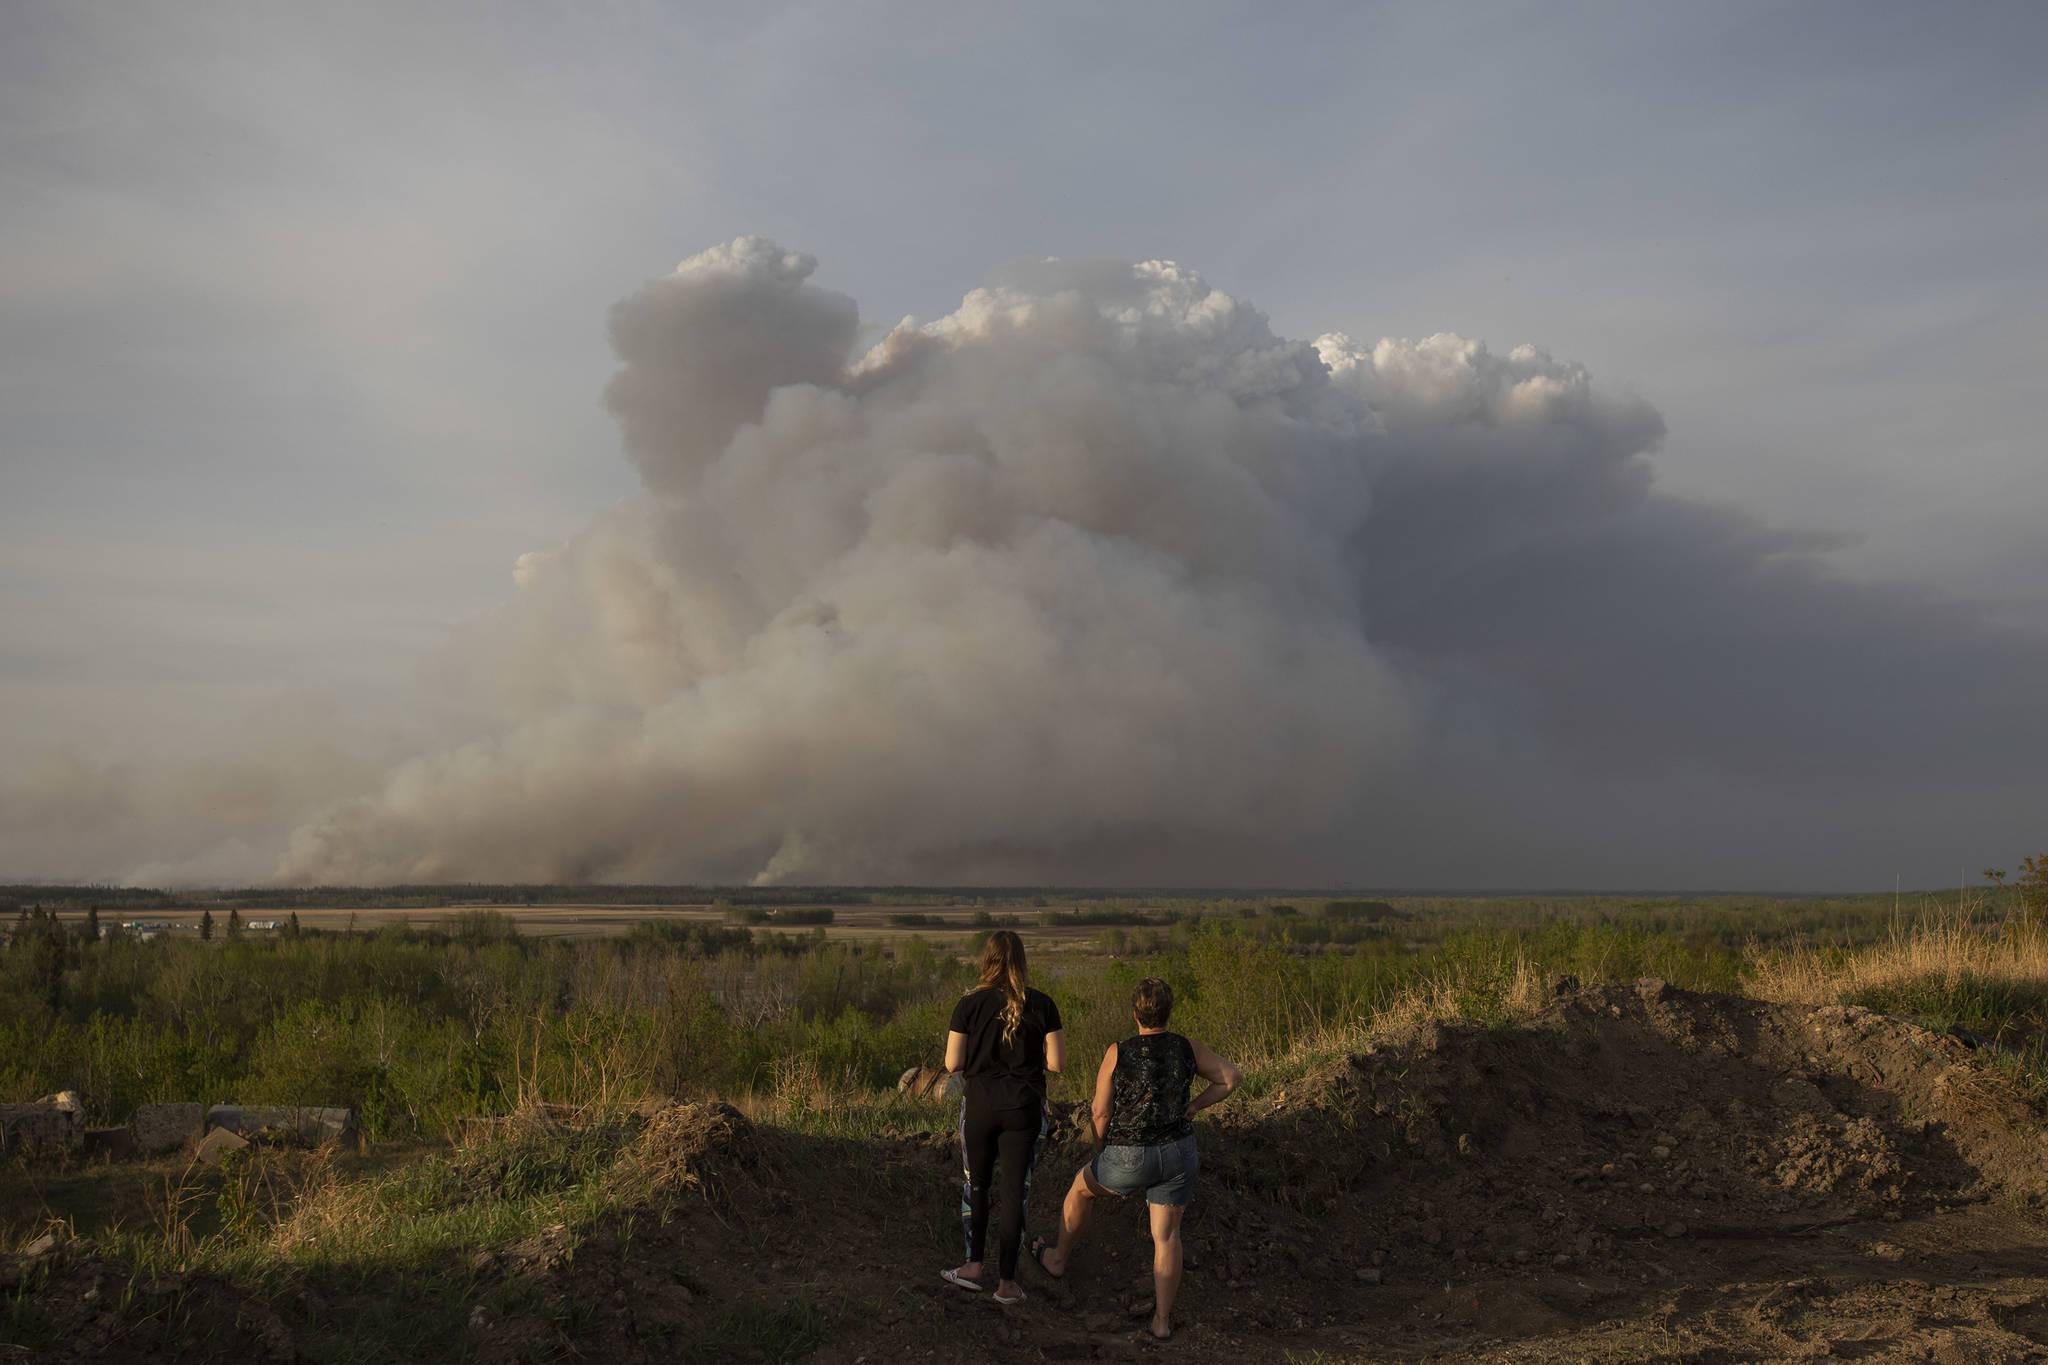 Residents of Prince Albert watch a plume of smoke rise from a forest fire burning northeast of the city in Prince Albert, Sask., Monday, May 17, 2021. The northern Saskatchewan city has declared a local state of emergency due to a wildfire that's fast-moving and forcing some residents to flee for safety. THE CANADIAN PRESS/Kayle Neis